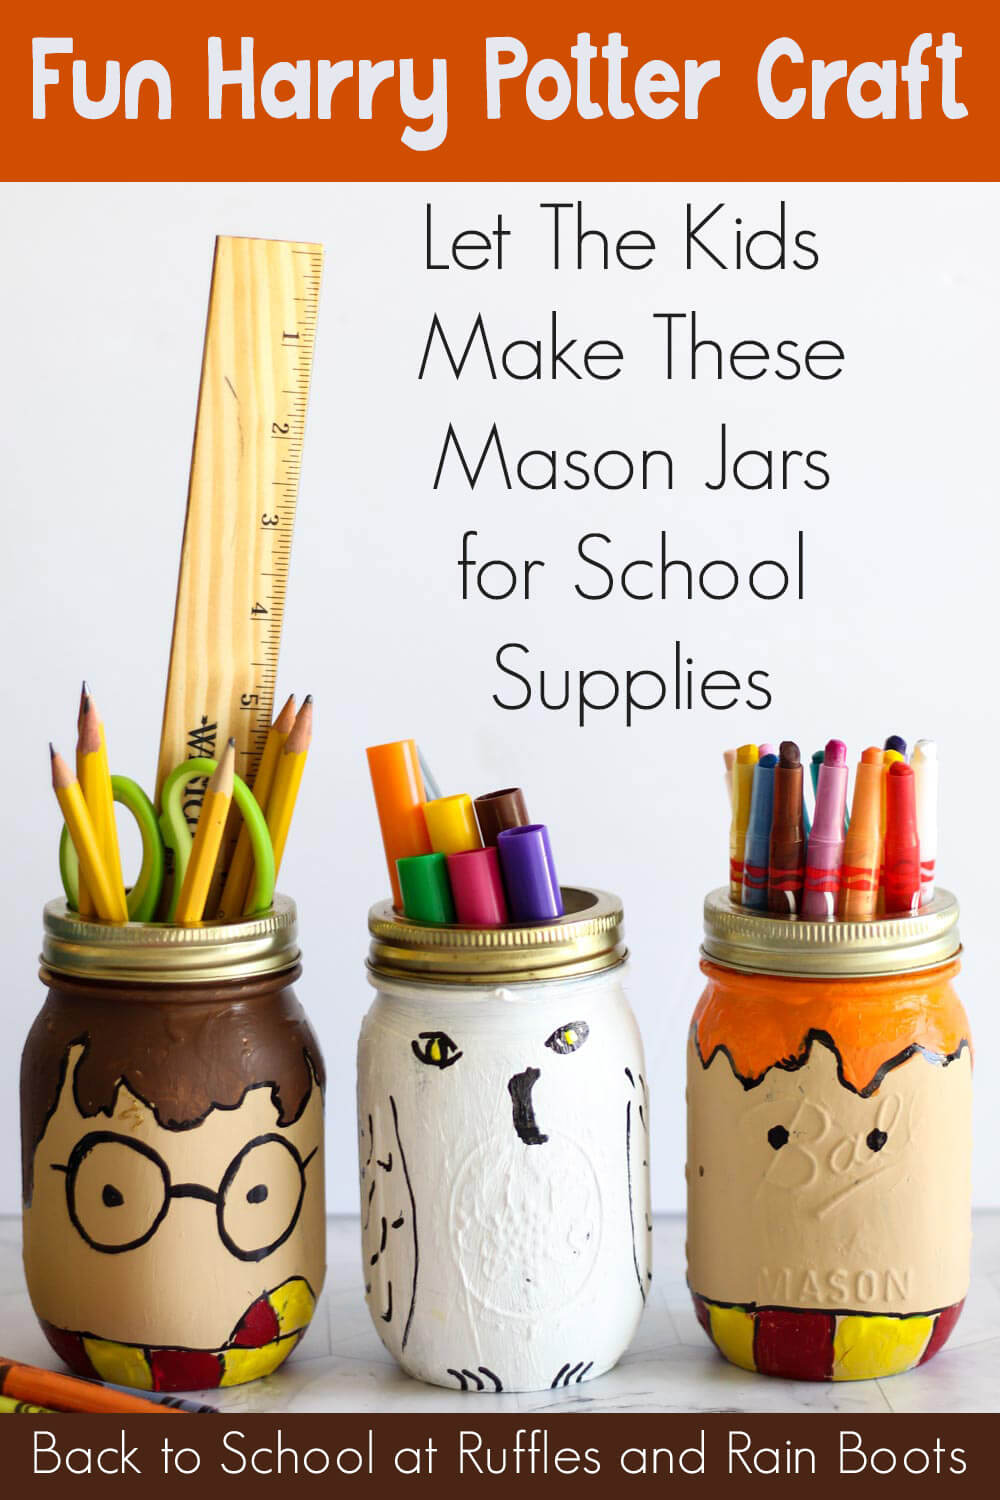 harry potter mason jar crafts idea for kids with text which reads fun harry potter craft let the kids make these mason jars for school supplies